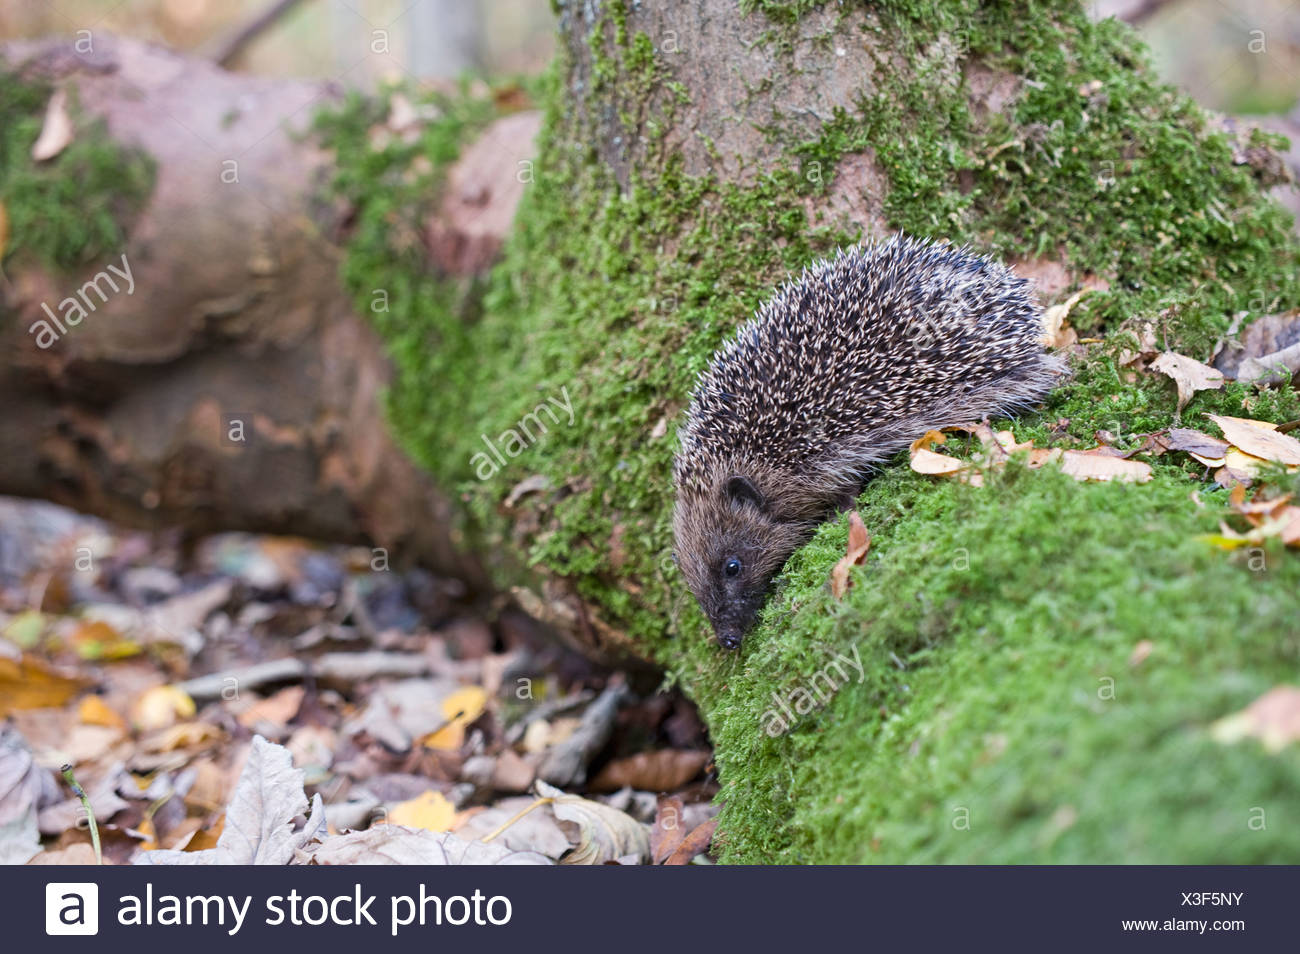 Hedgehog Erinaceus europaeus in woodland Norfolk UK autumn Stock Photo